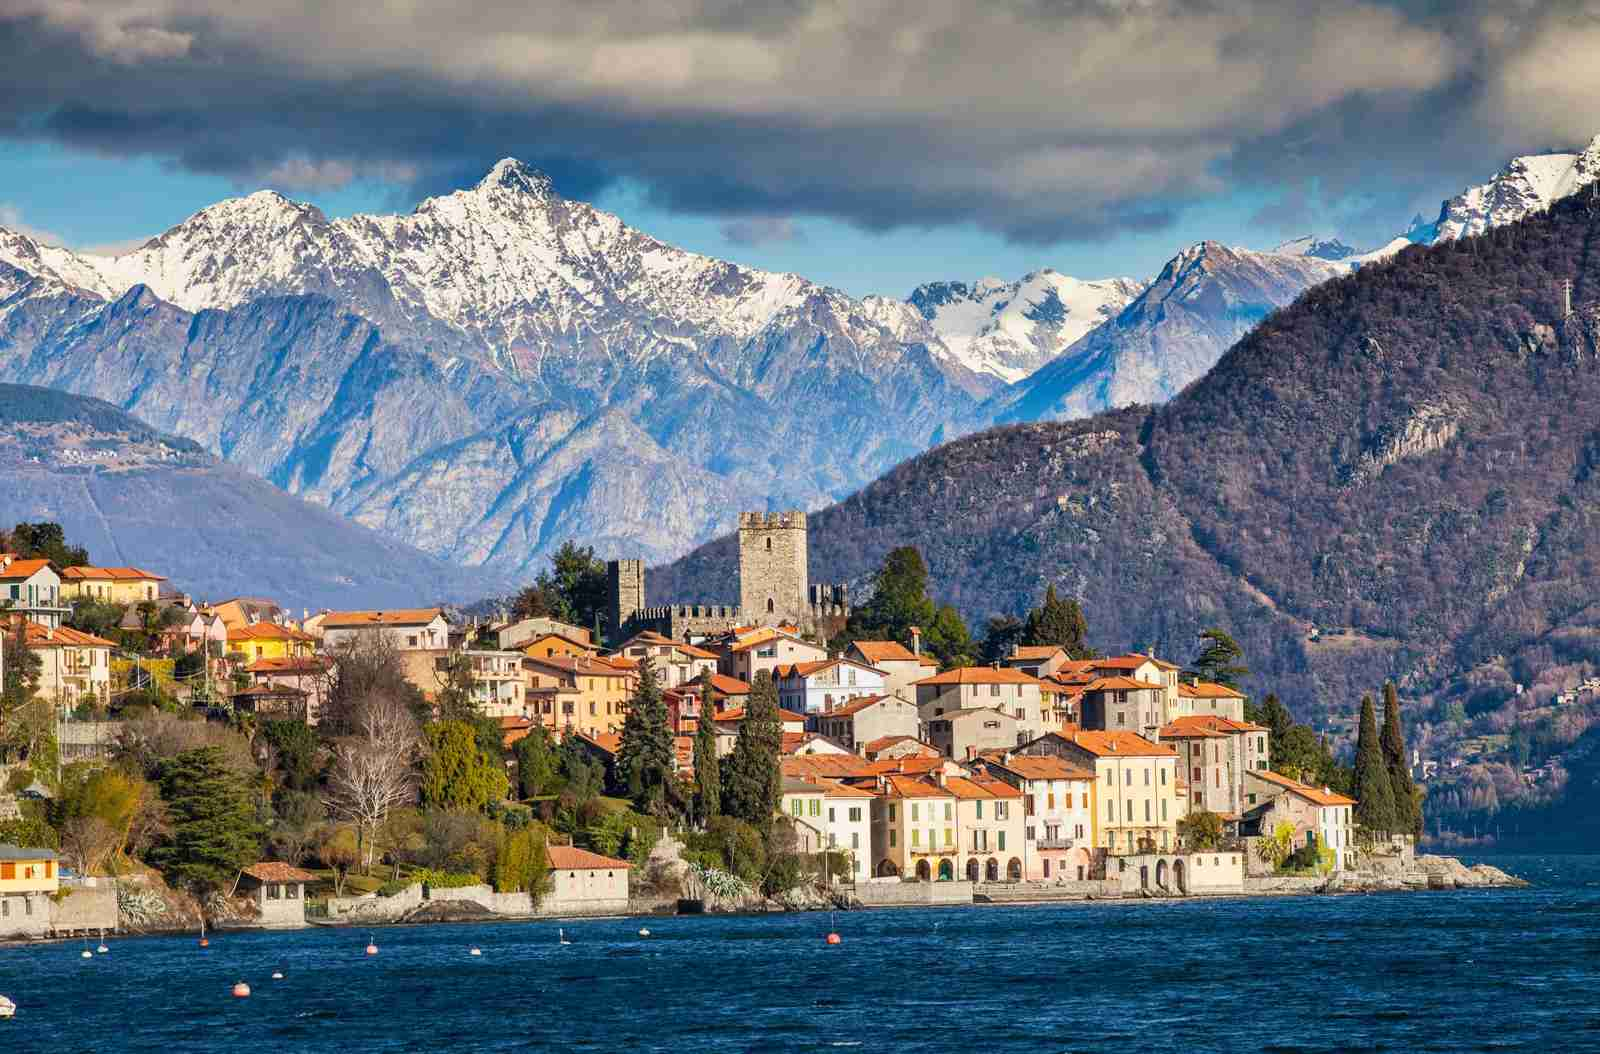 Lake Como. (Photo by Francesco Meroni/Getty Images)